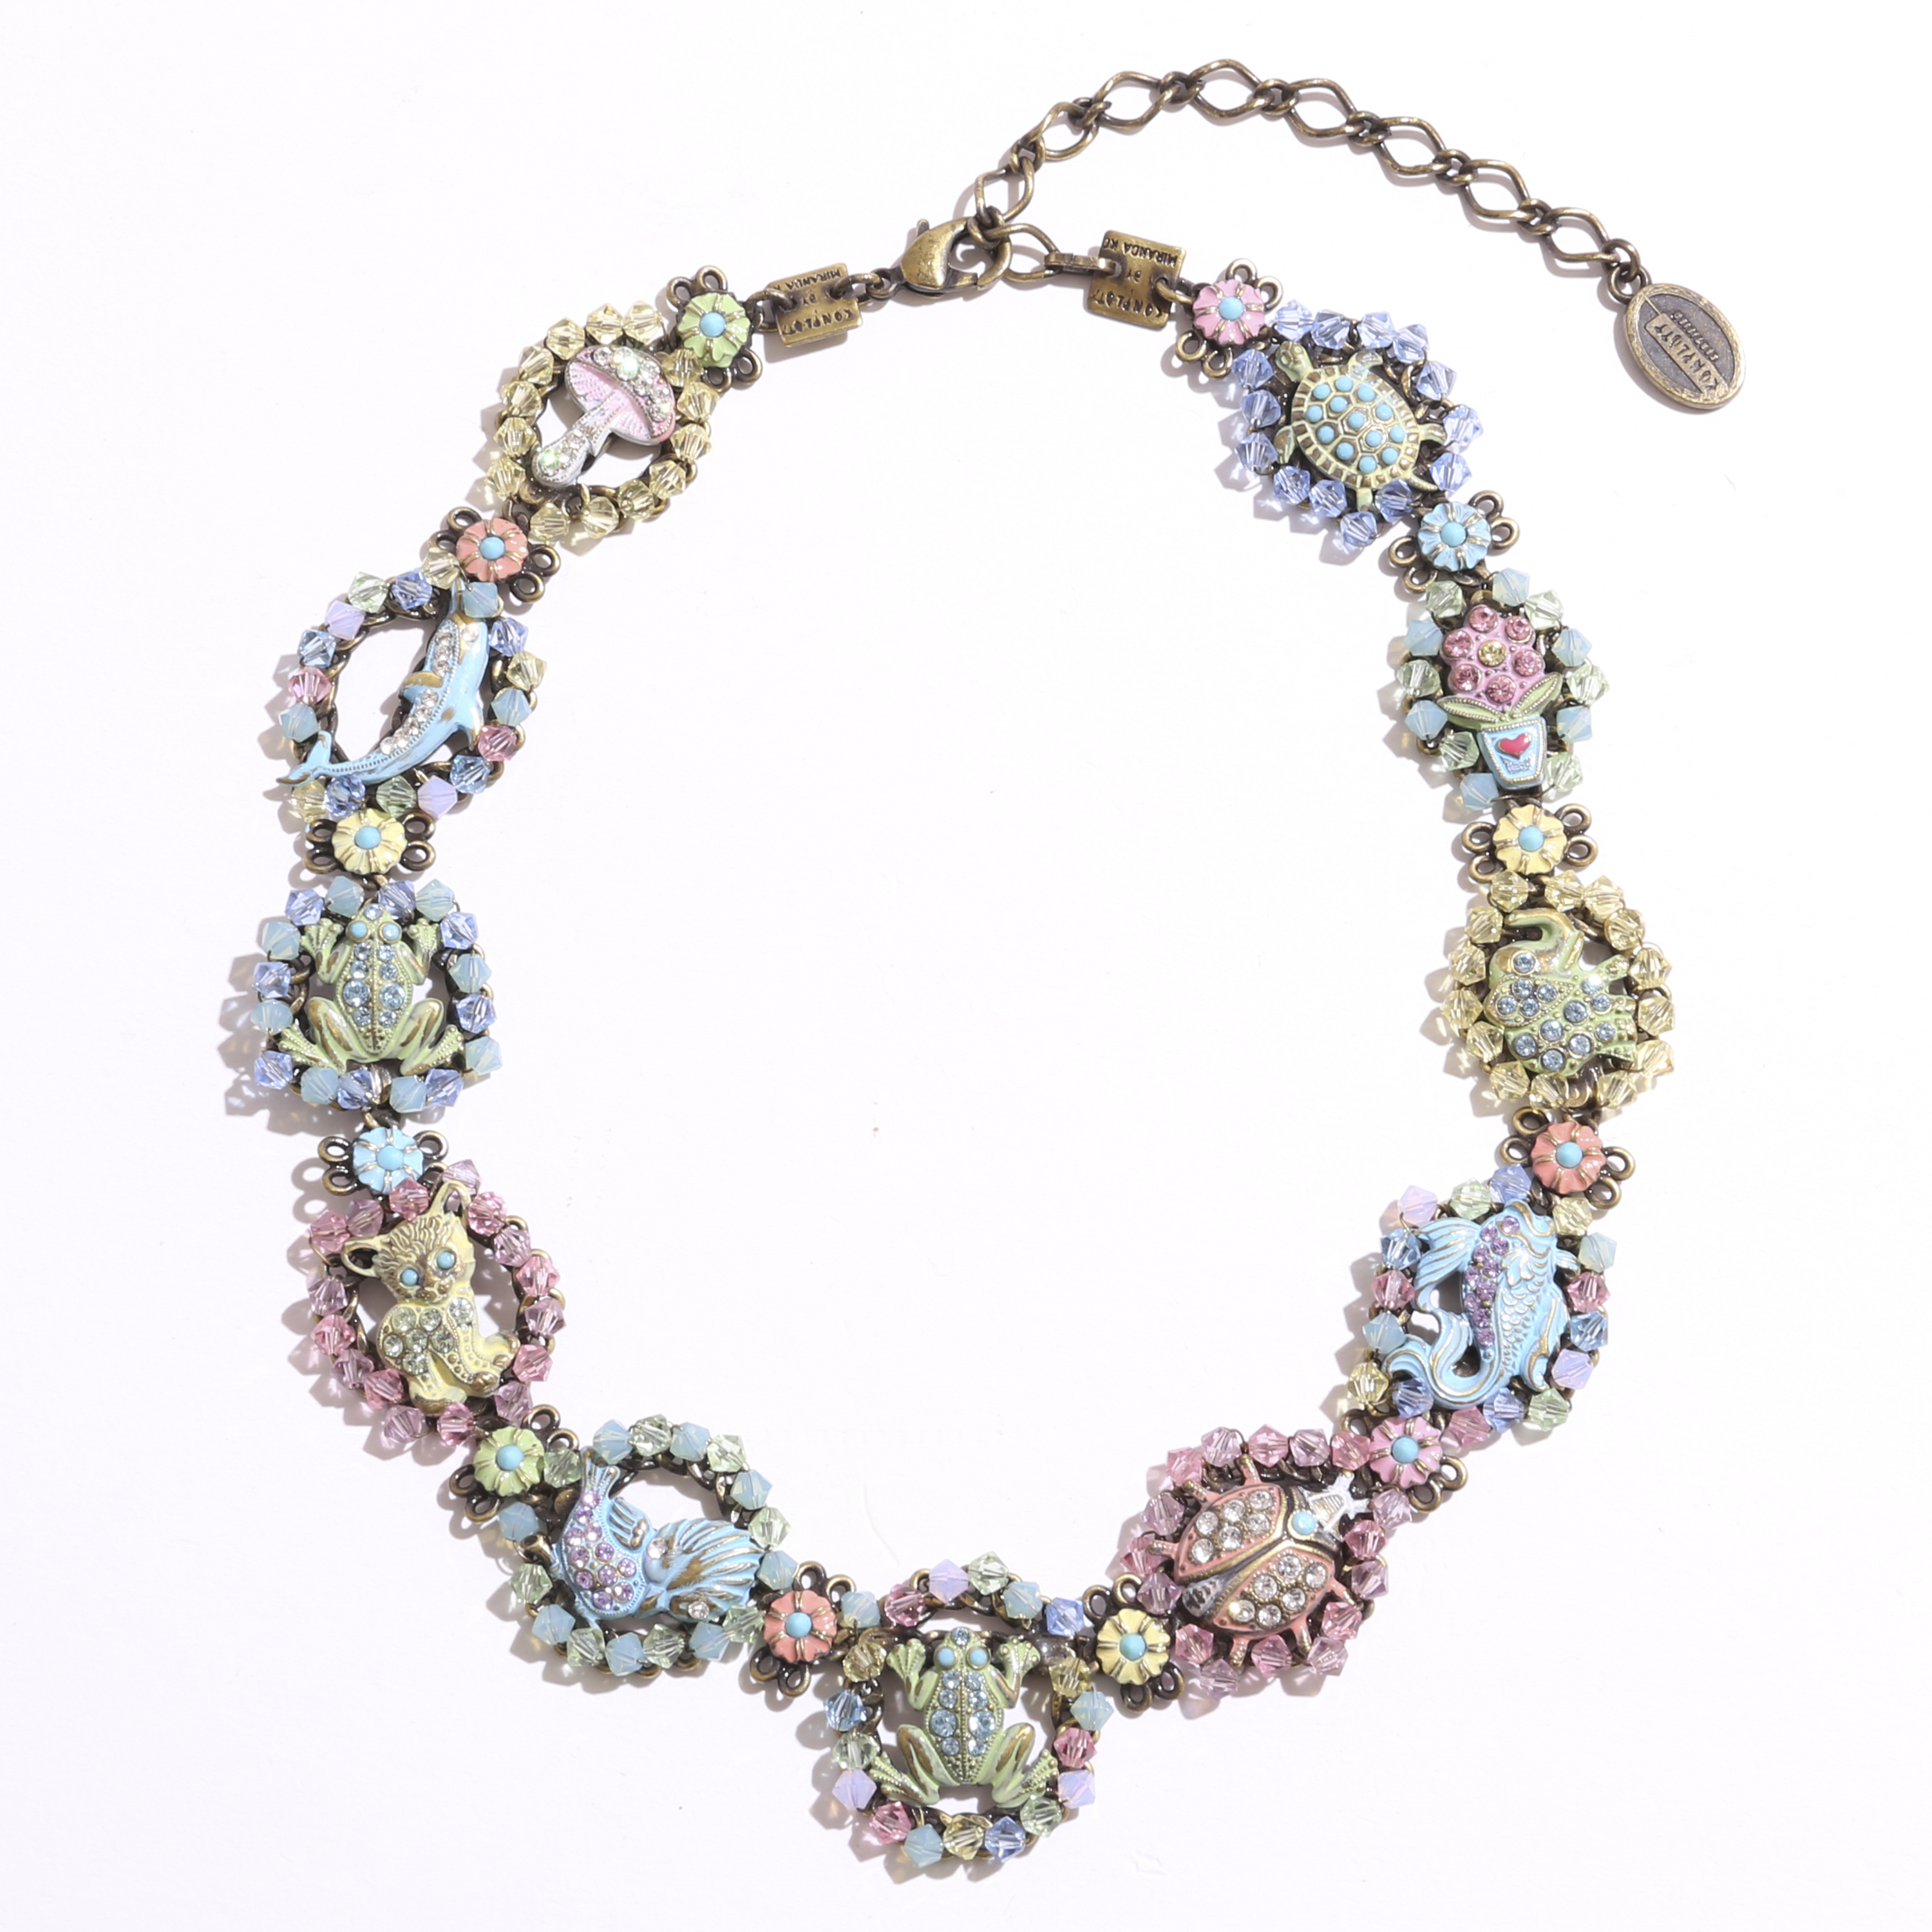 Carousel neklace/mulchネックレス